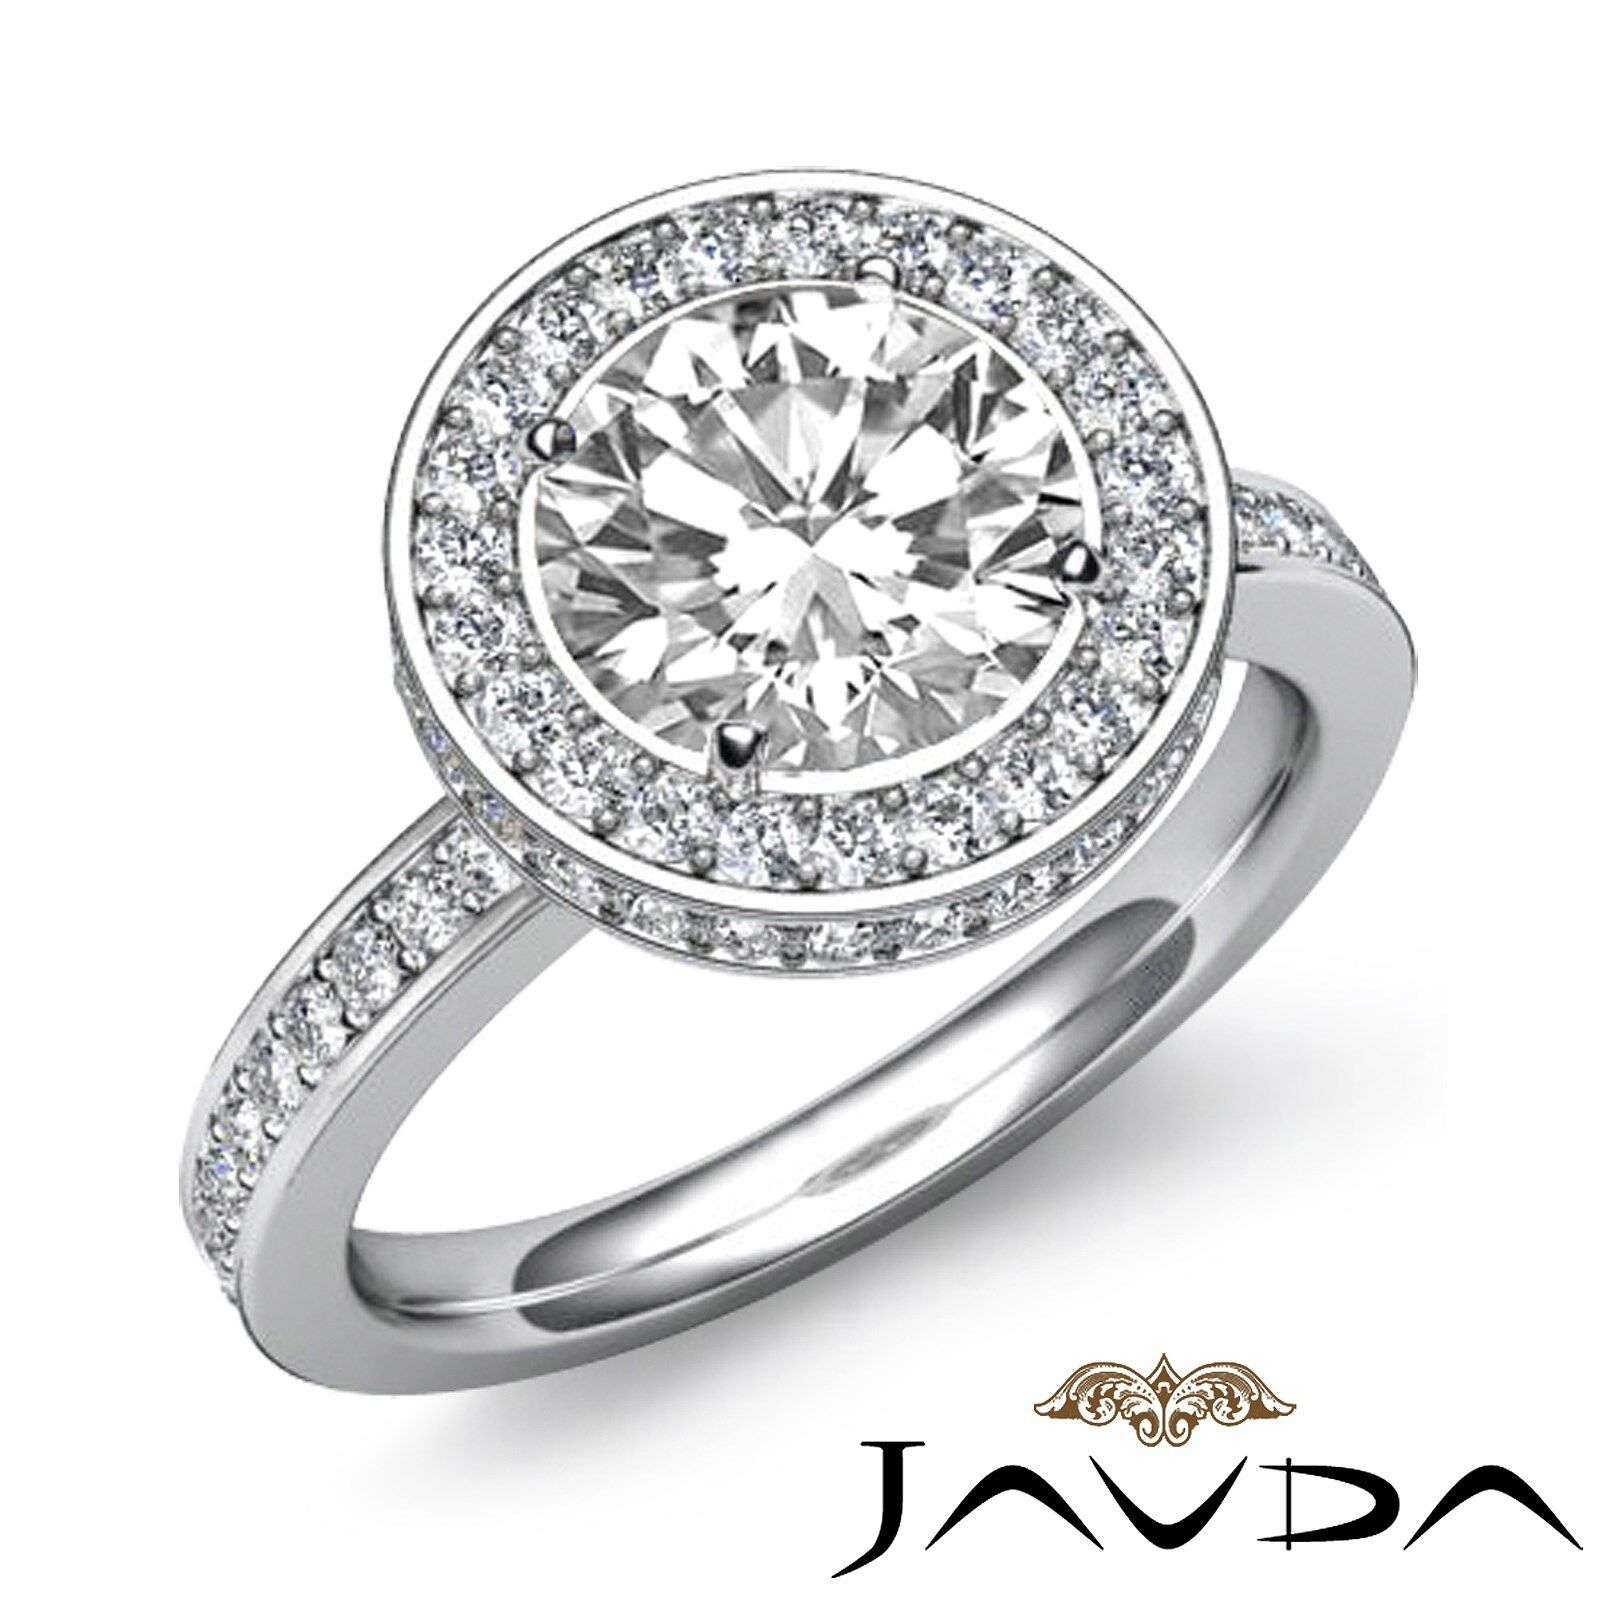 Circa Halo Pave Setting Round Diamond Engagement Ring GIA Certified I VS2 2.3 Ct